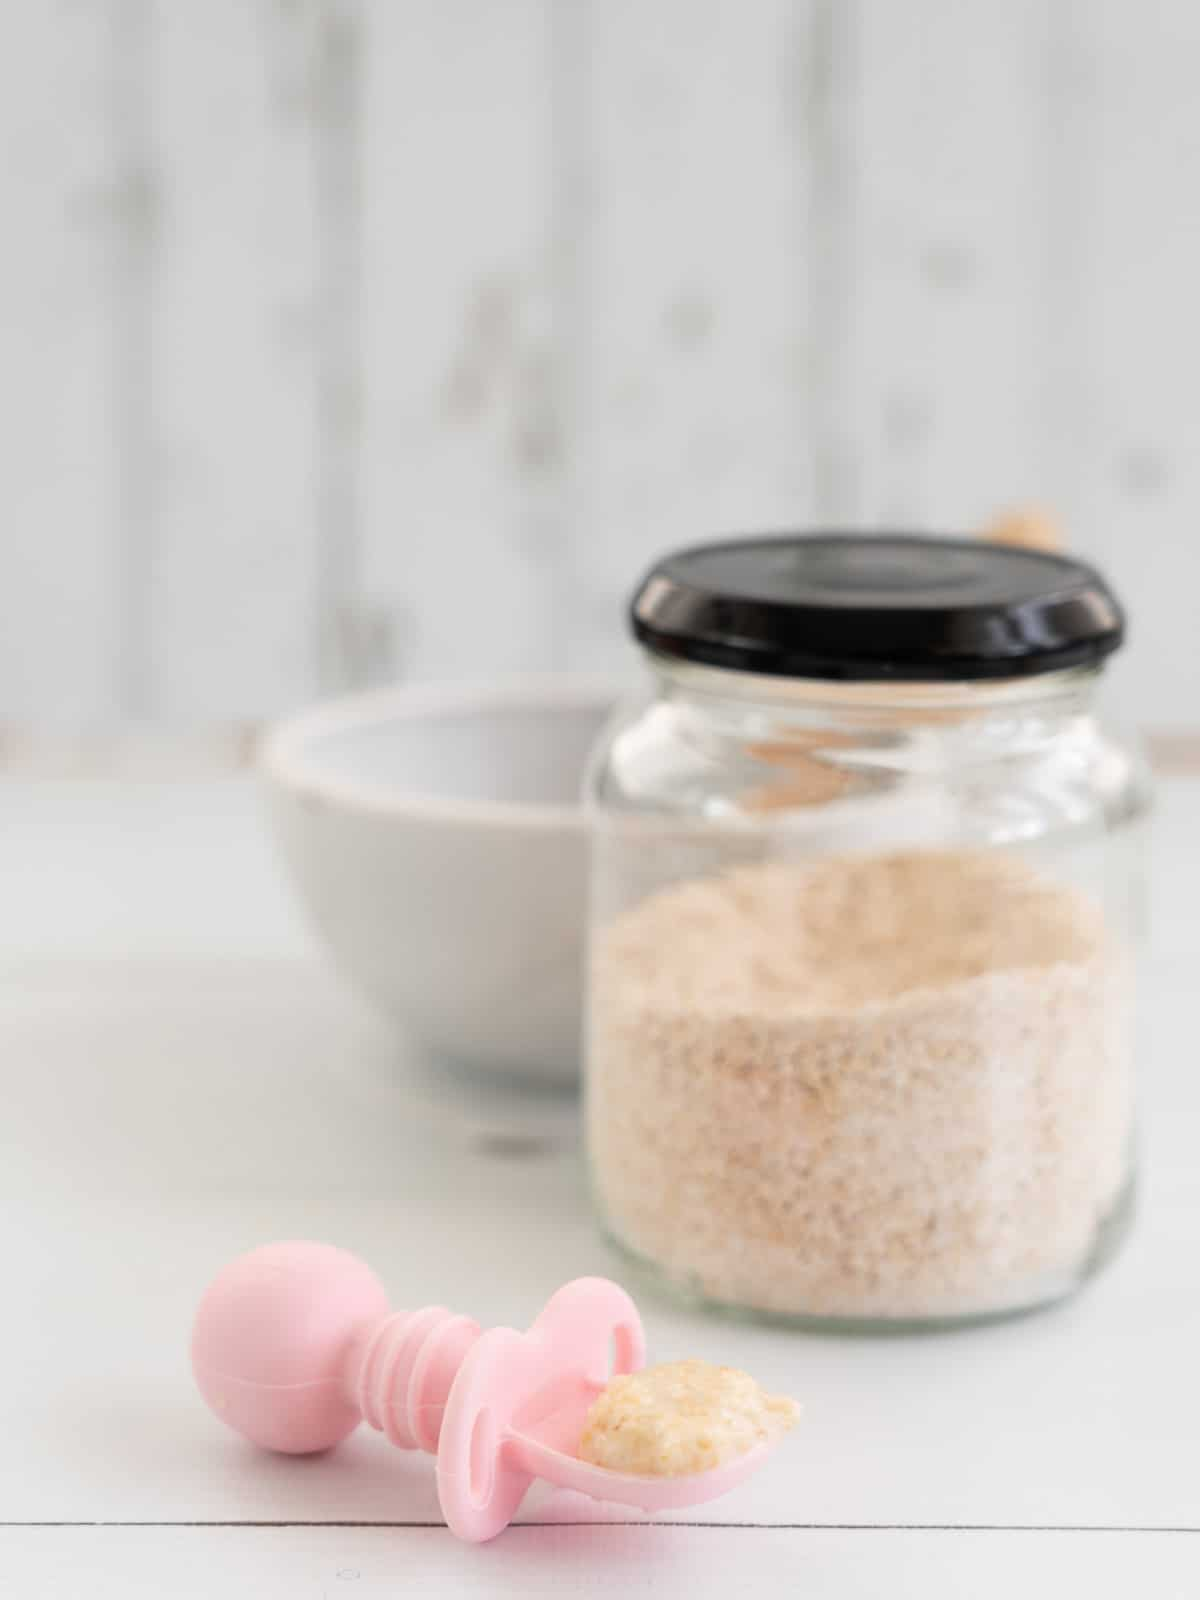 spoonful of cooked baby porridge on a pink baby spoon with a jar of baby oats in the background